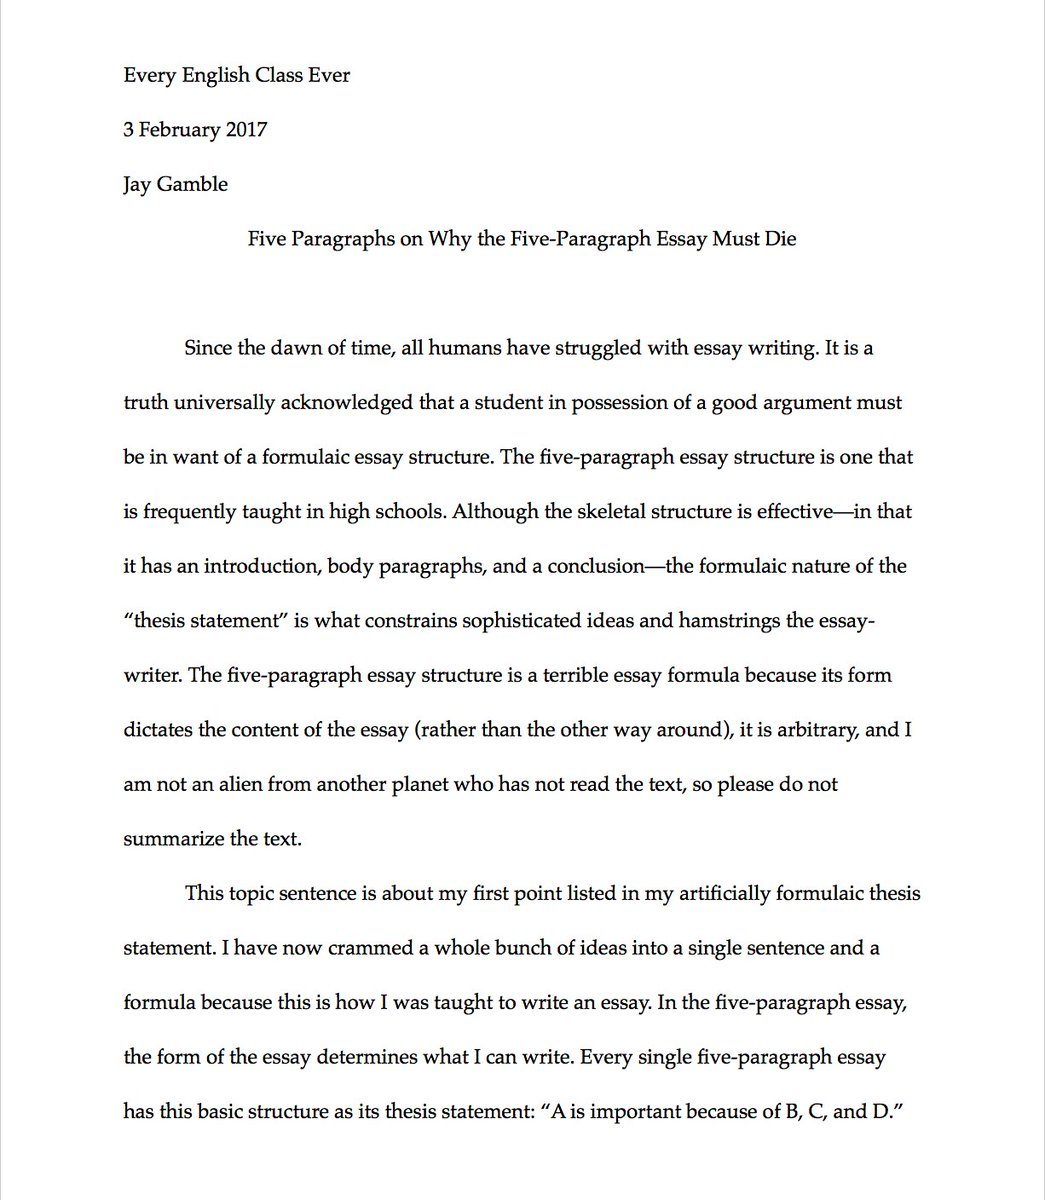 007 Paragraph Essay C3xanfgumaav1io Exceptional 3 Example Elementary Outline Full